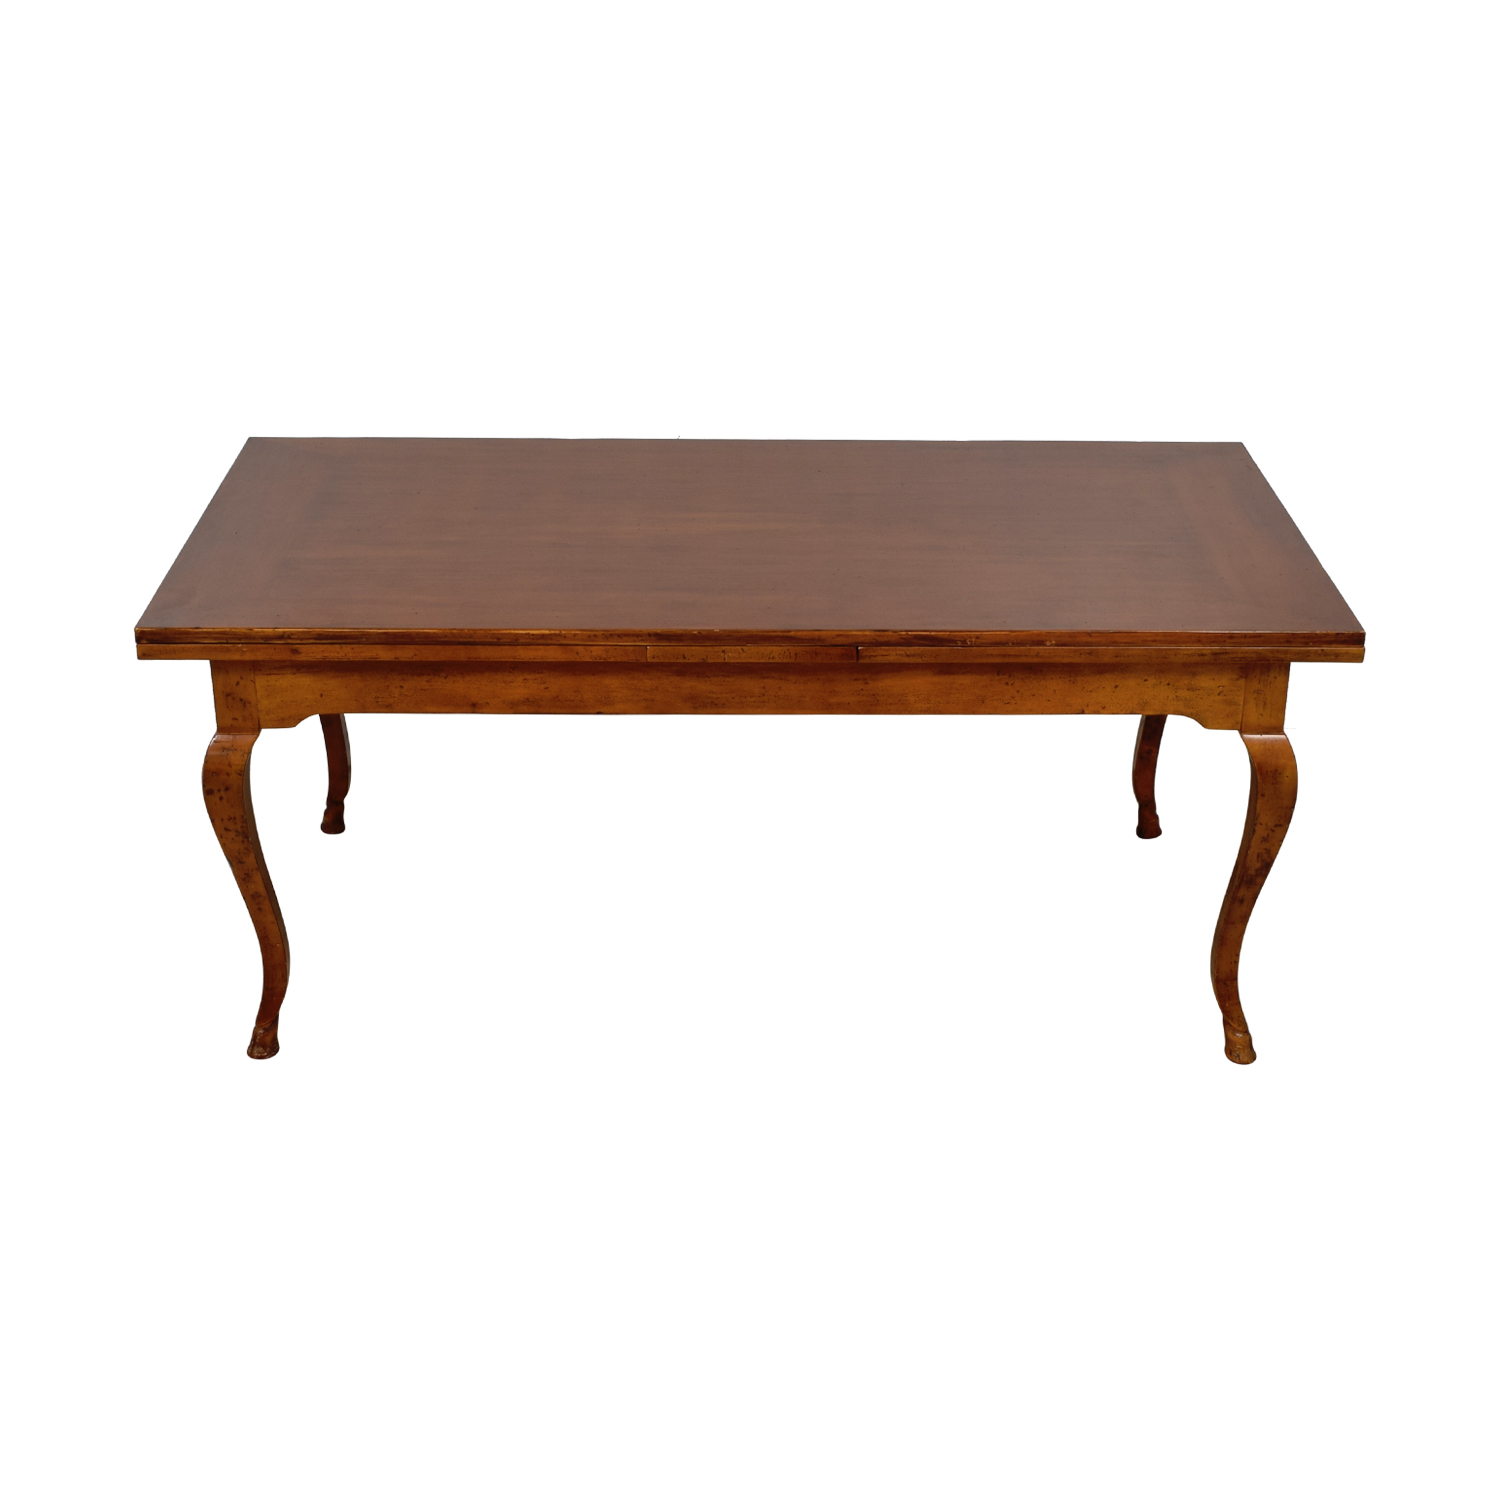 Bloomingdale's Bloomingdale's Wood Dining Table dimensions